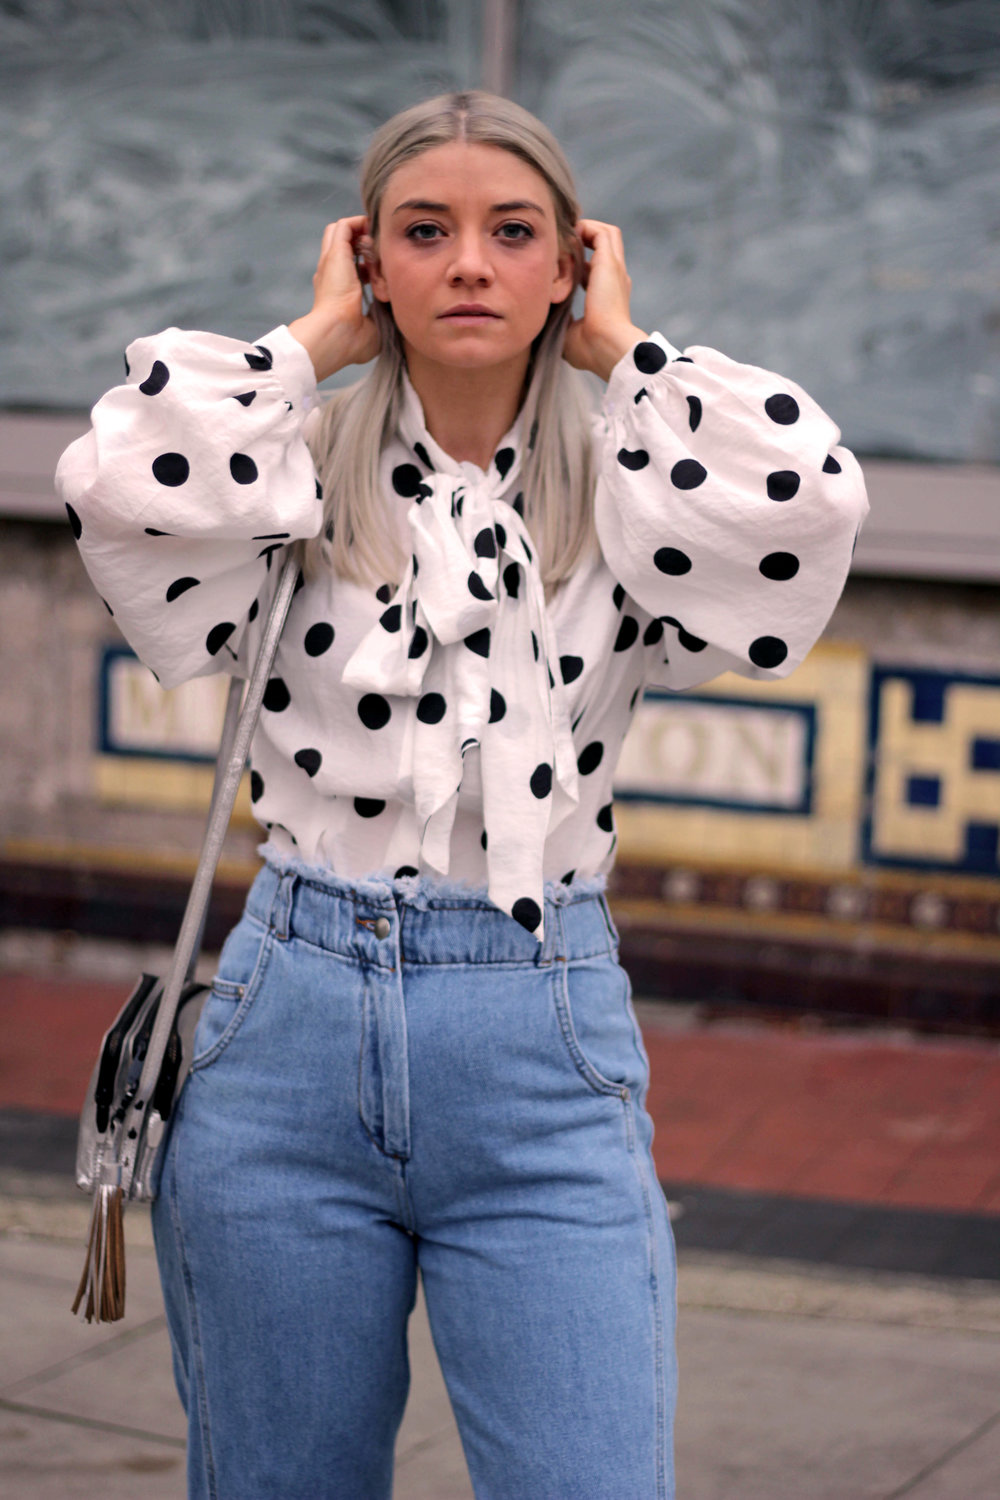 PUSSY BOW POLKA DOT BLOUSE, WIDE LEG FRAYED TOPSHOP JEANS, BLACK ANKLE BOOTS, NORTHERN MAGPIE, JOEY TAYLOR 5